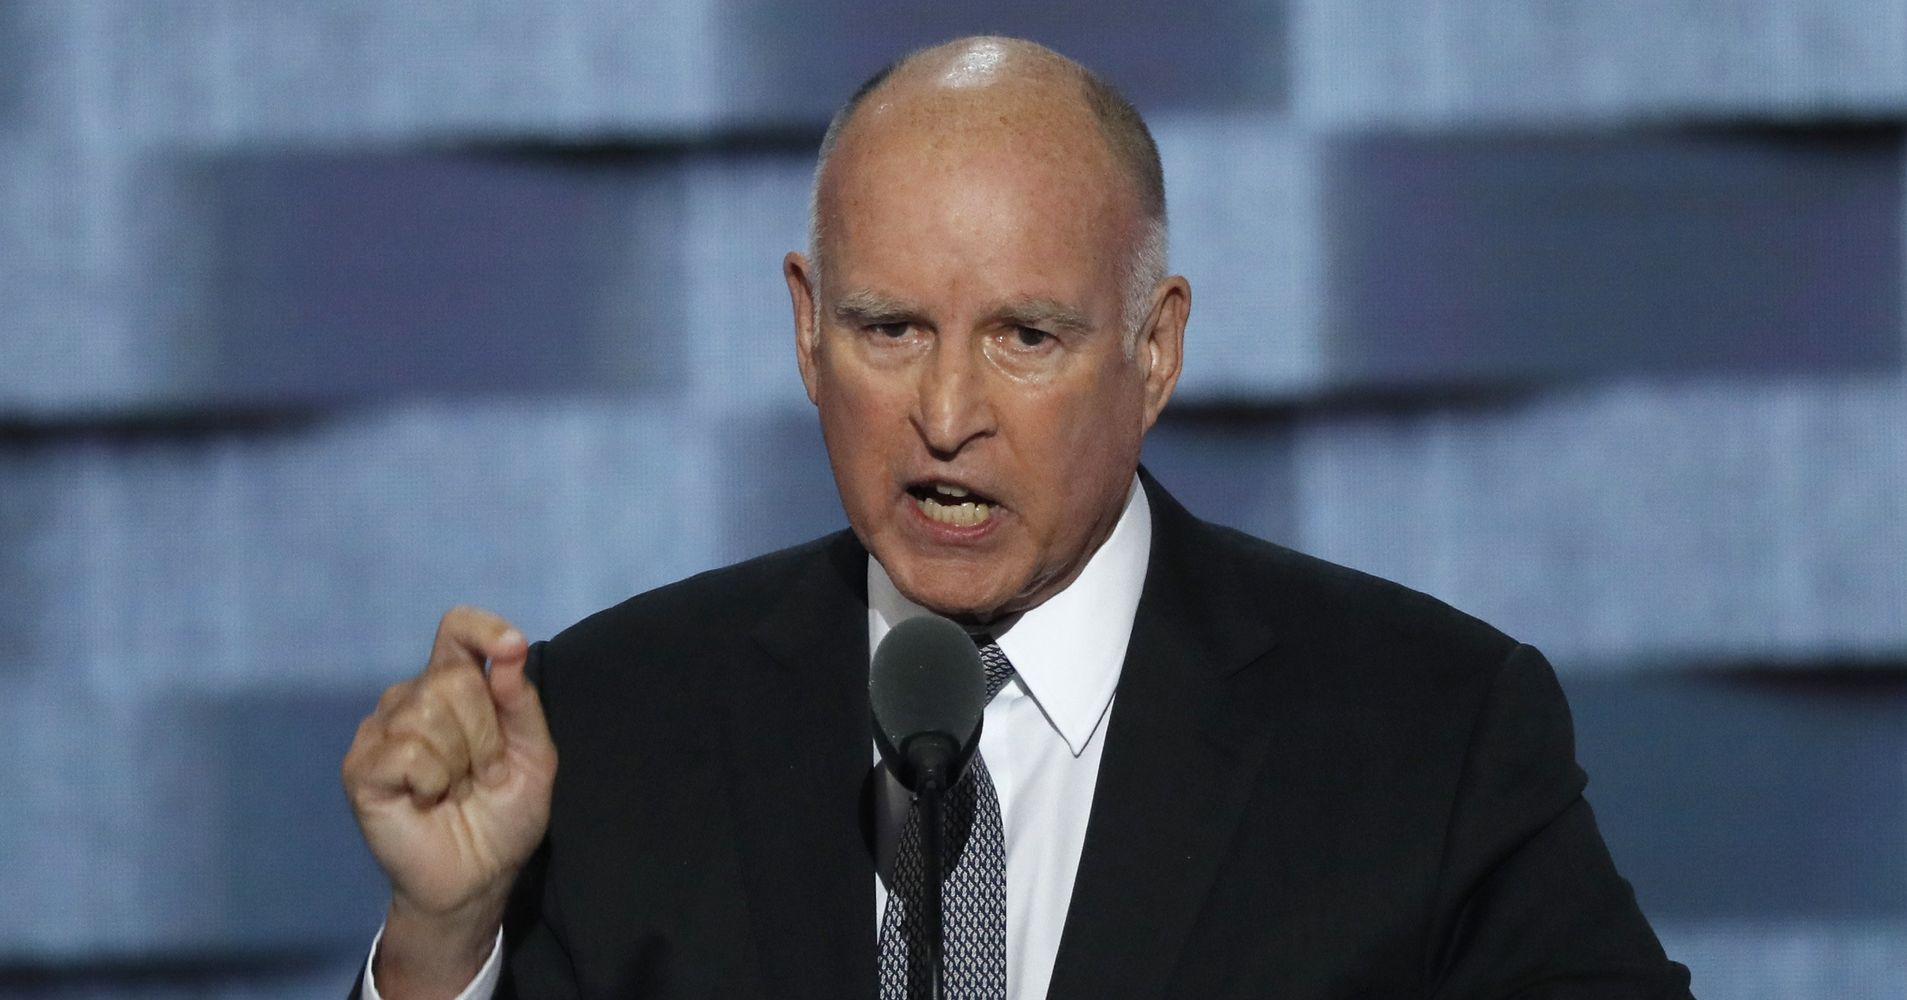 Jerry Brown: 'Troglodyte' Trump Supporters 'Dwell In Deep, Dark Caves'